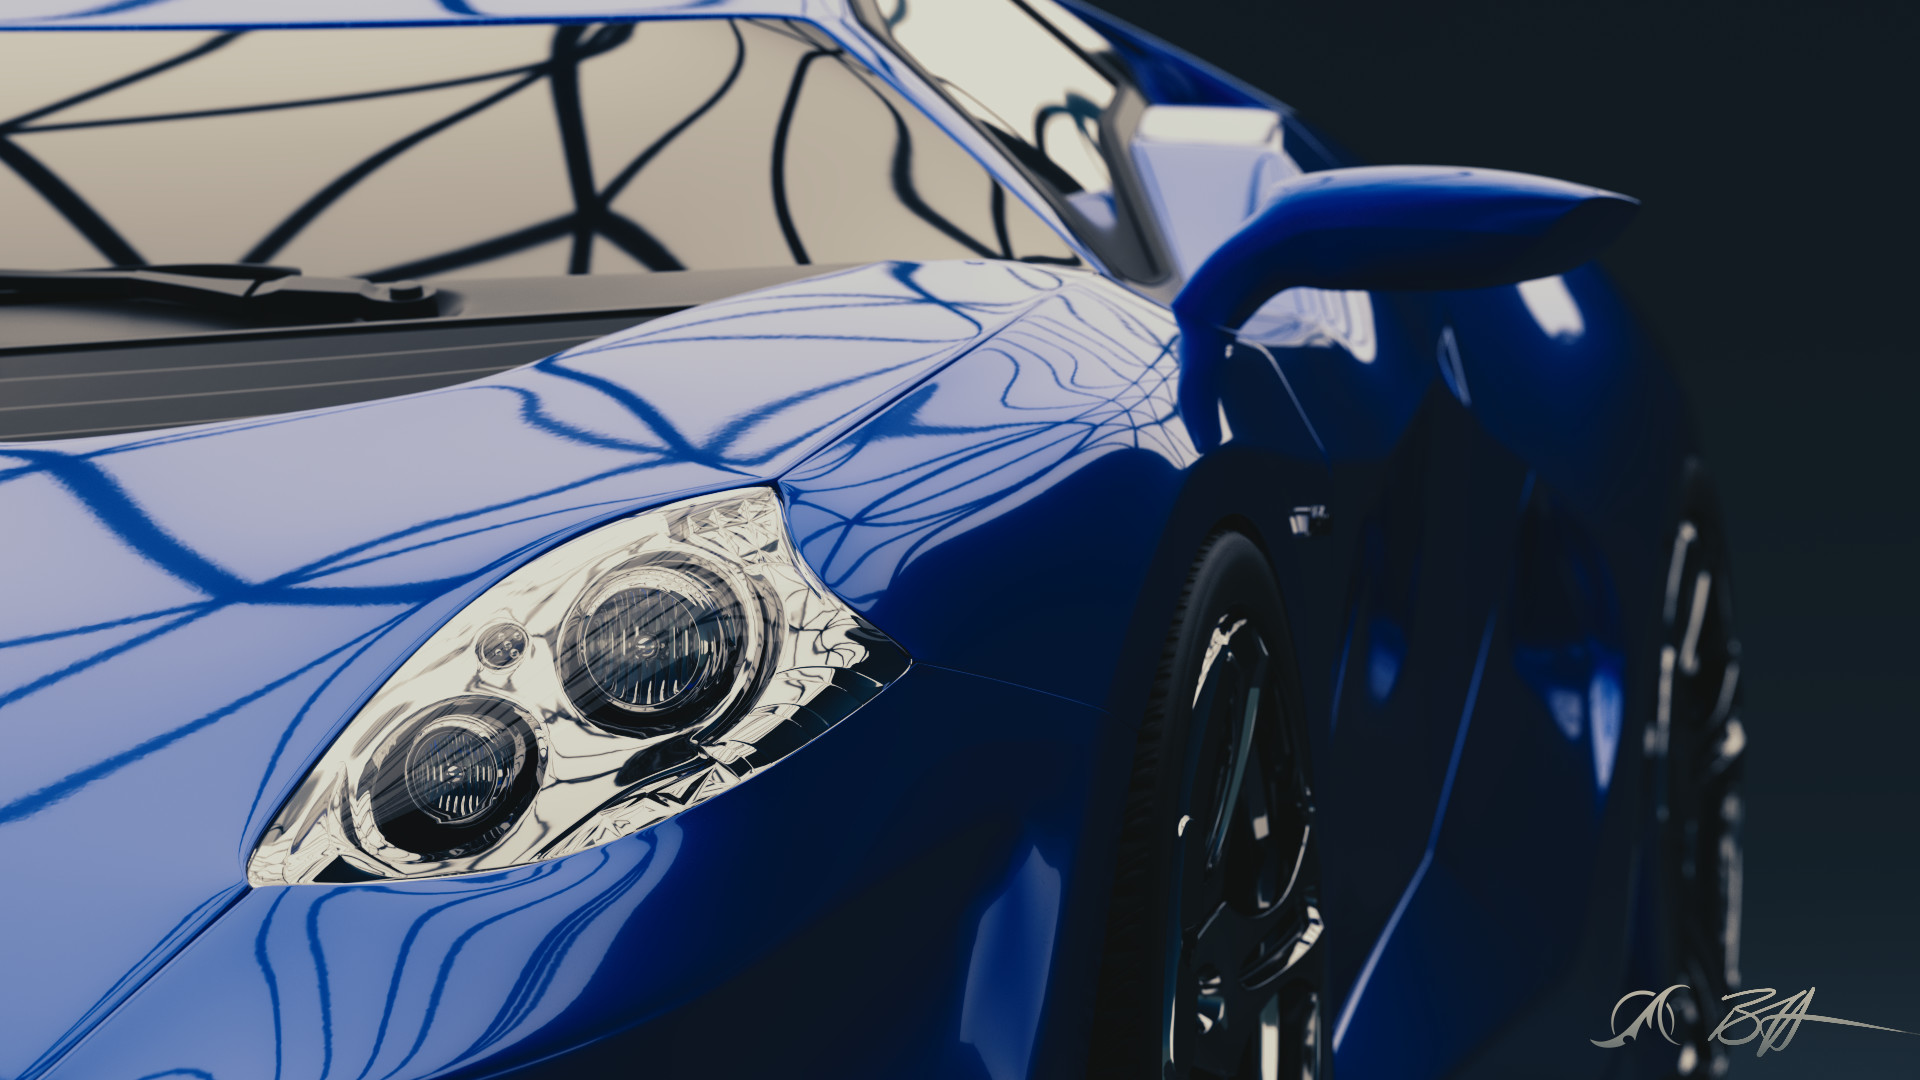 A close up version of the internal headlight details and car paint shaders, depth of field rendered natively in Cycles